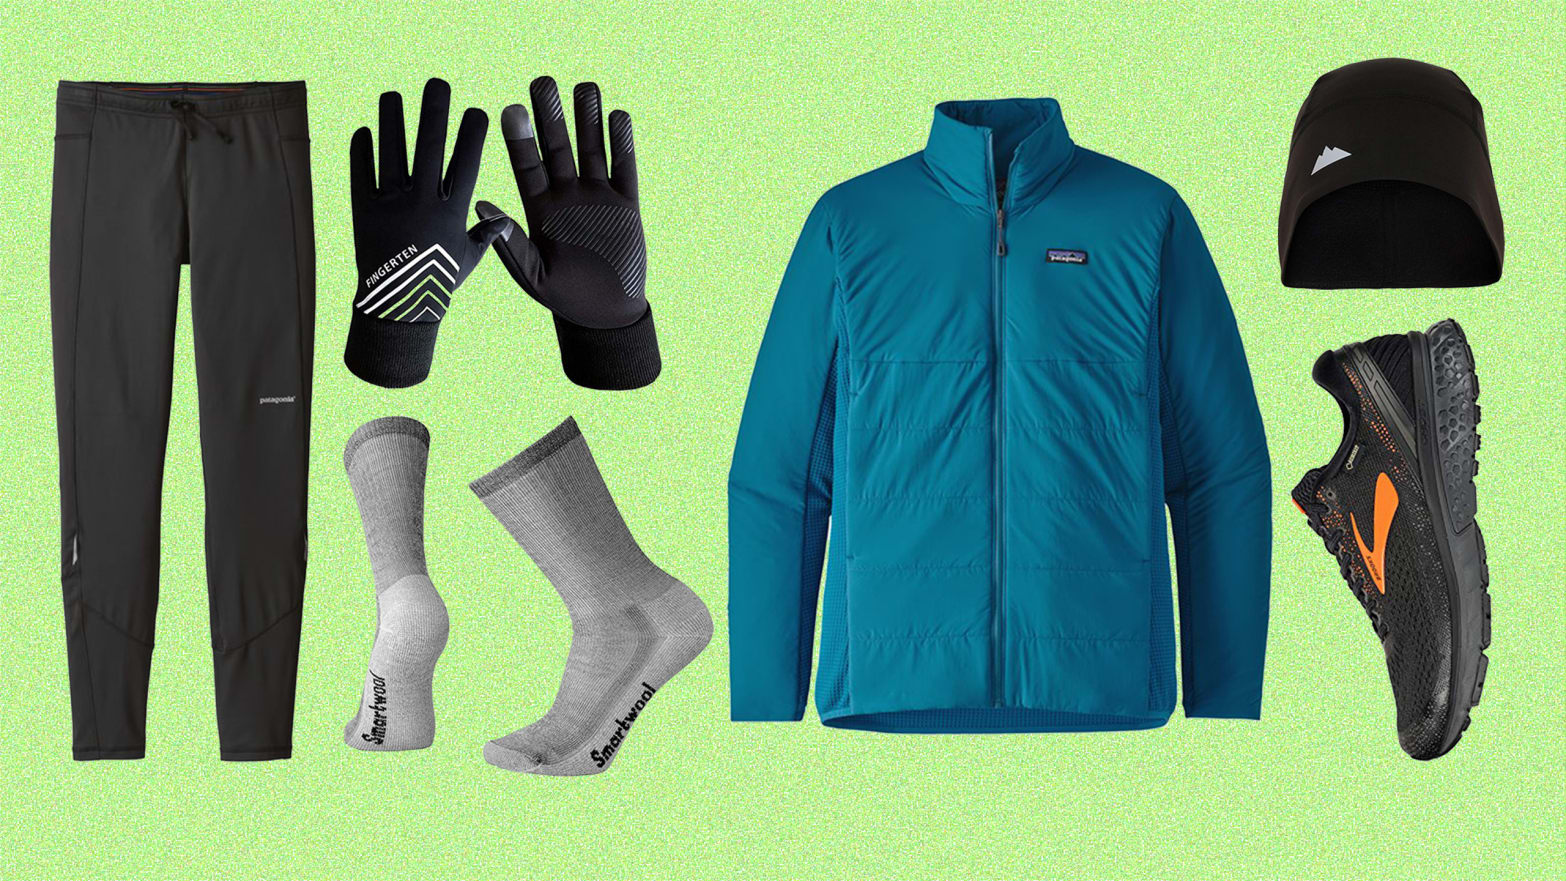 A Runner's Guide On What to Wear During Winter and Cold Weather Running